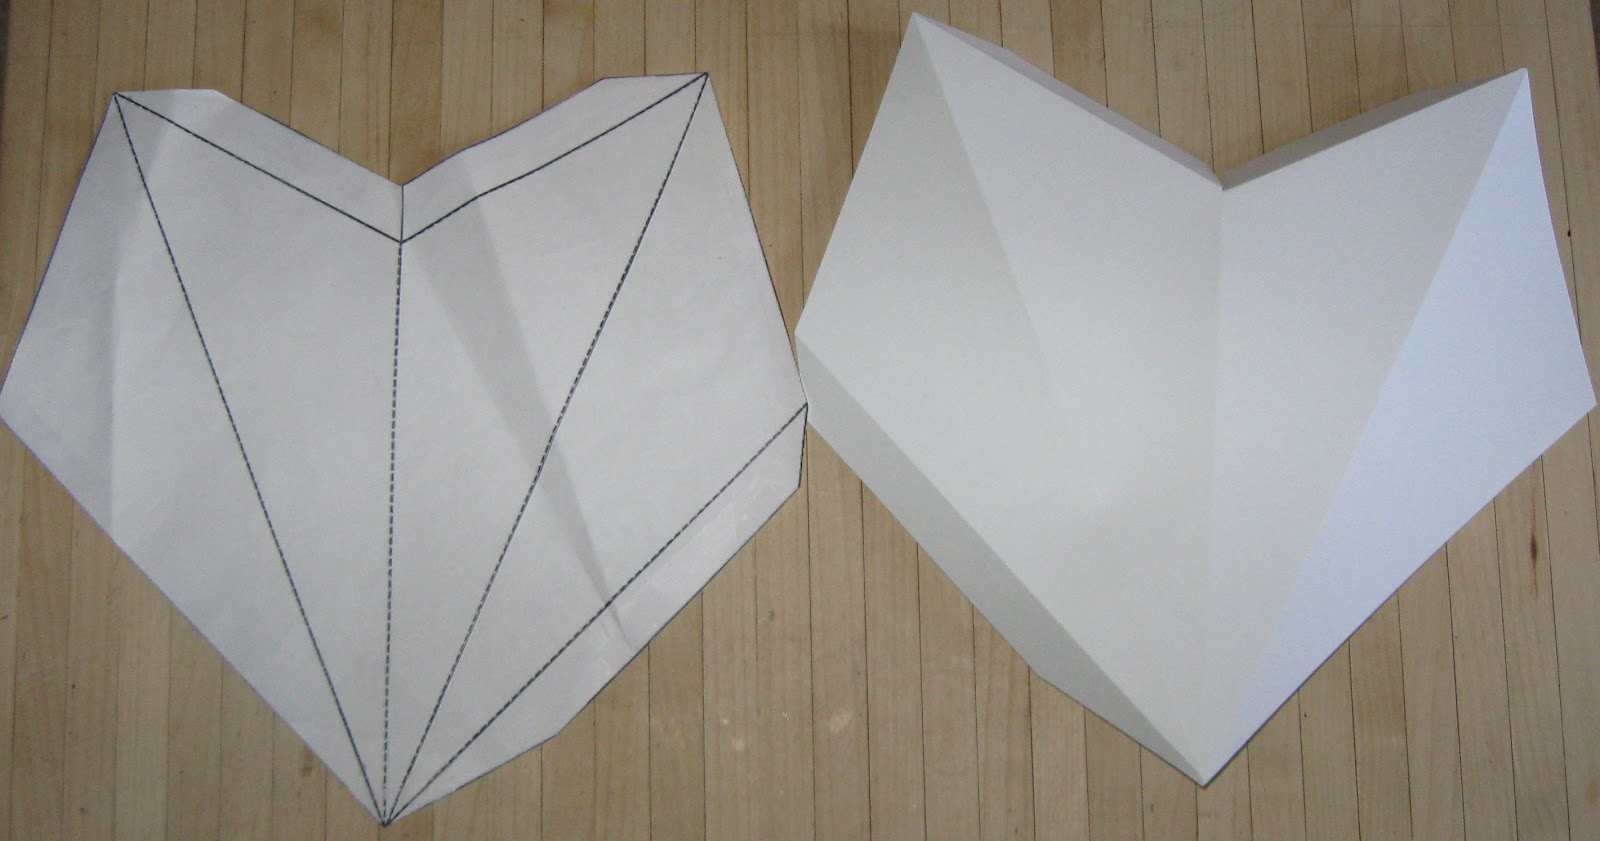 The Sincerest Form of Flattery: Paper Star Lanterns